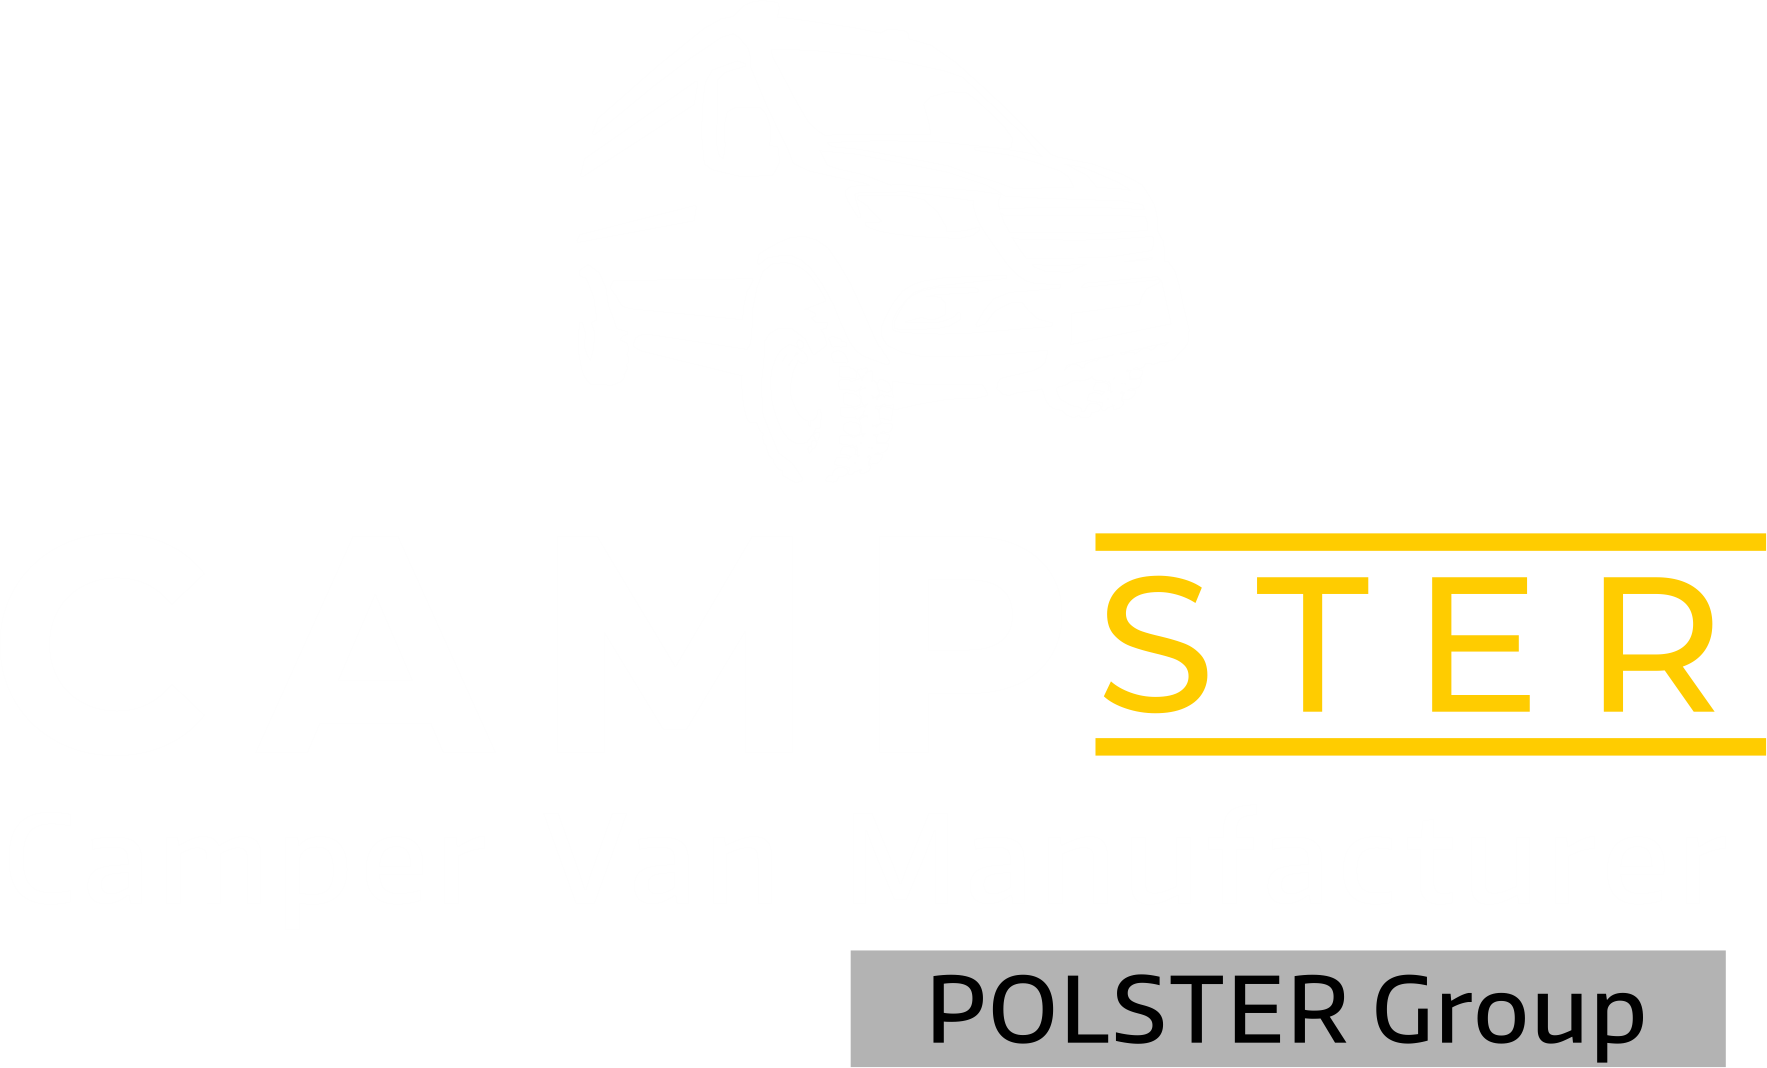 Campster